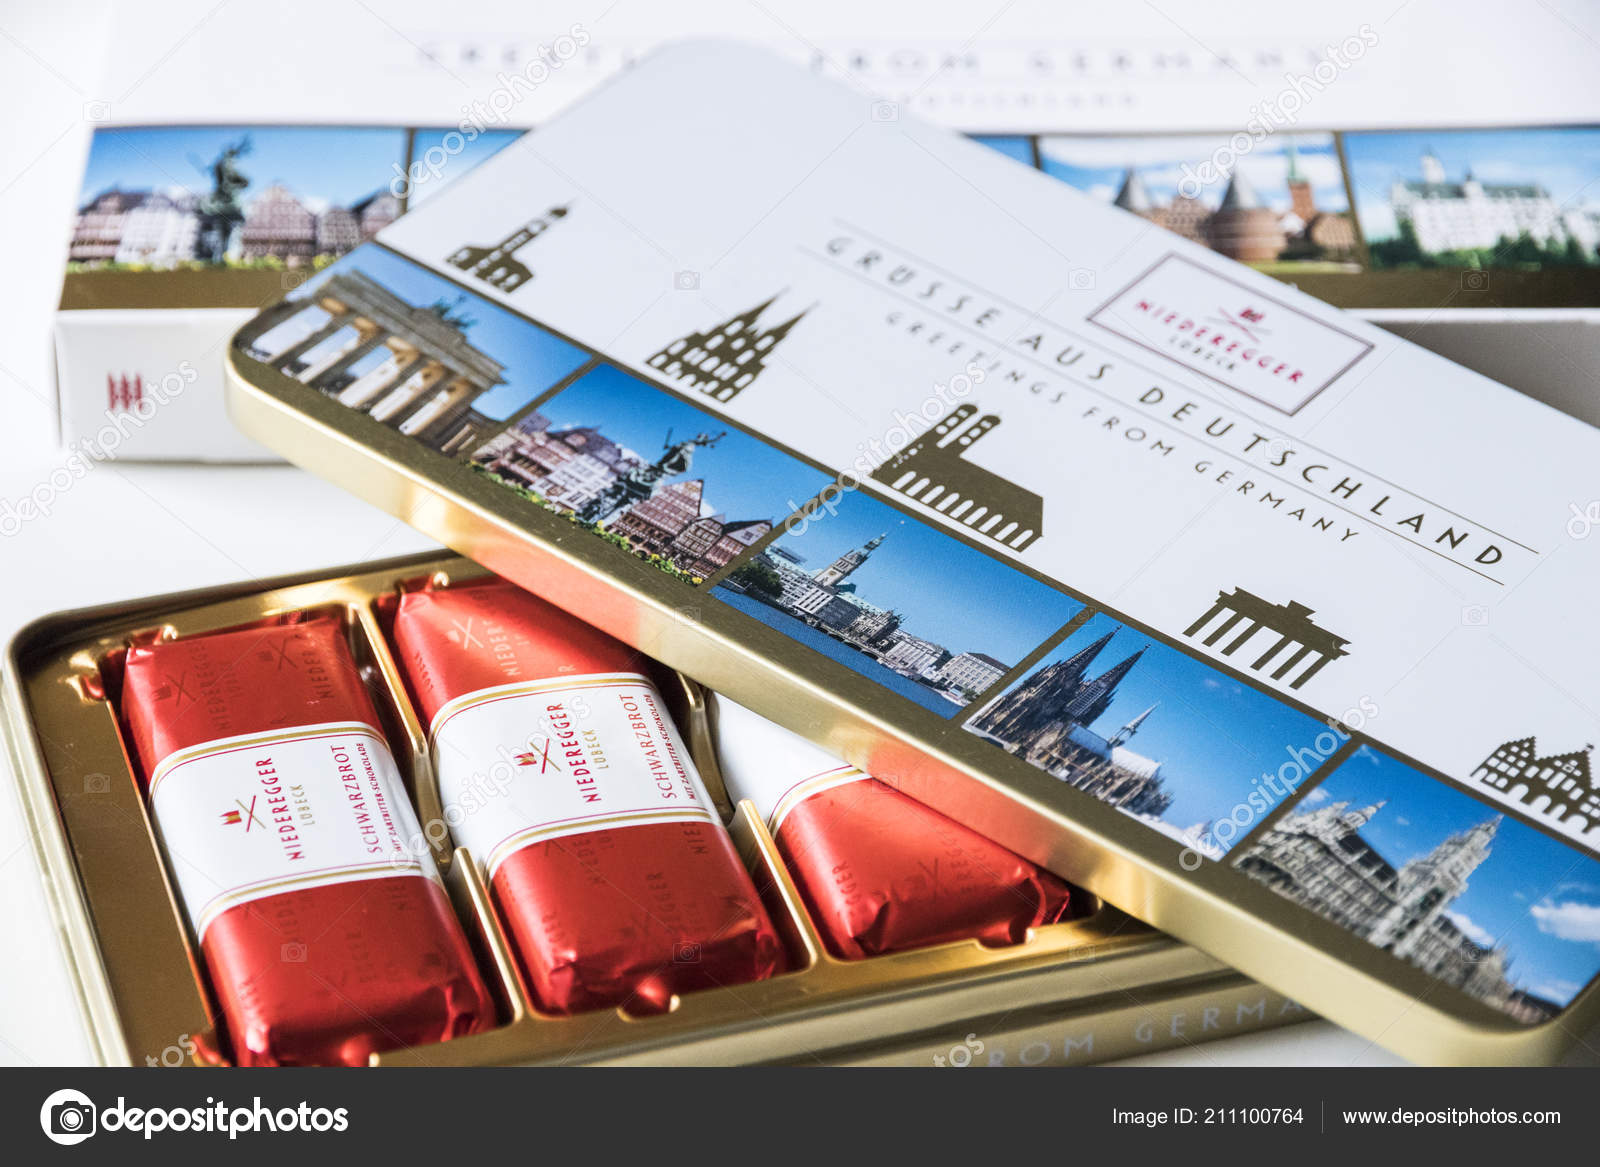 Lübeck Card Lubeck Germany Lubeck Marzipans Open Box Produced Niederegger Gmbh